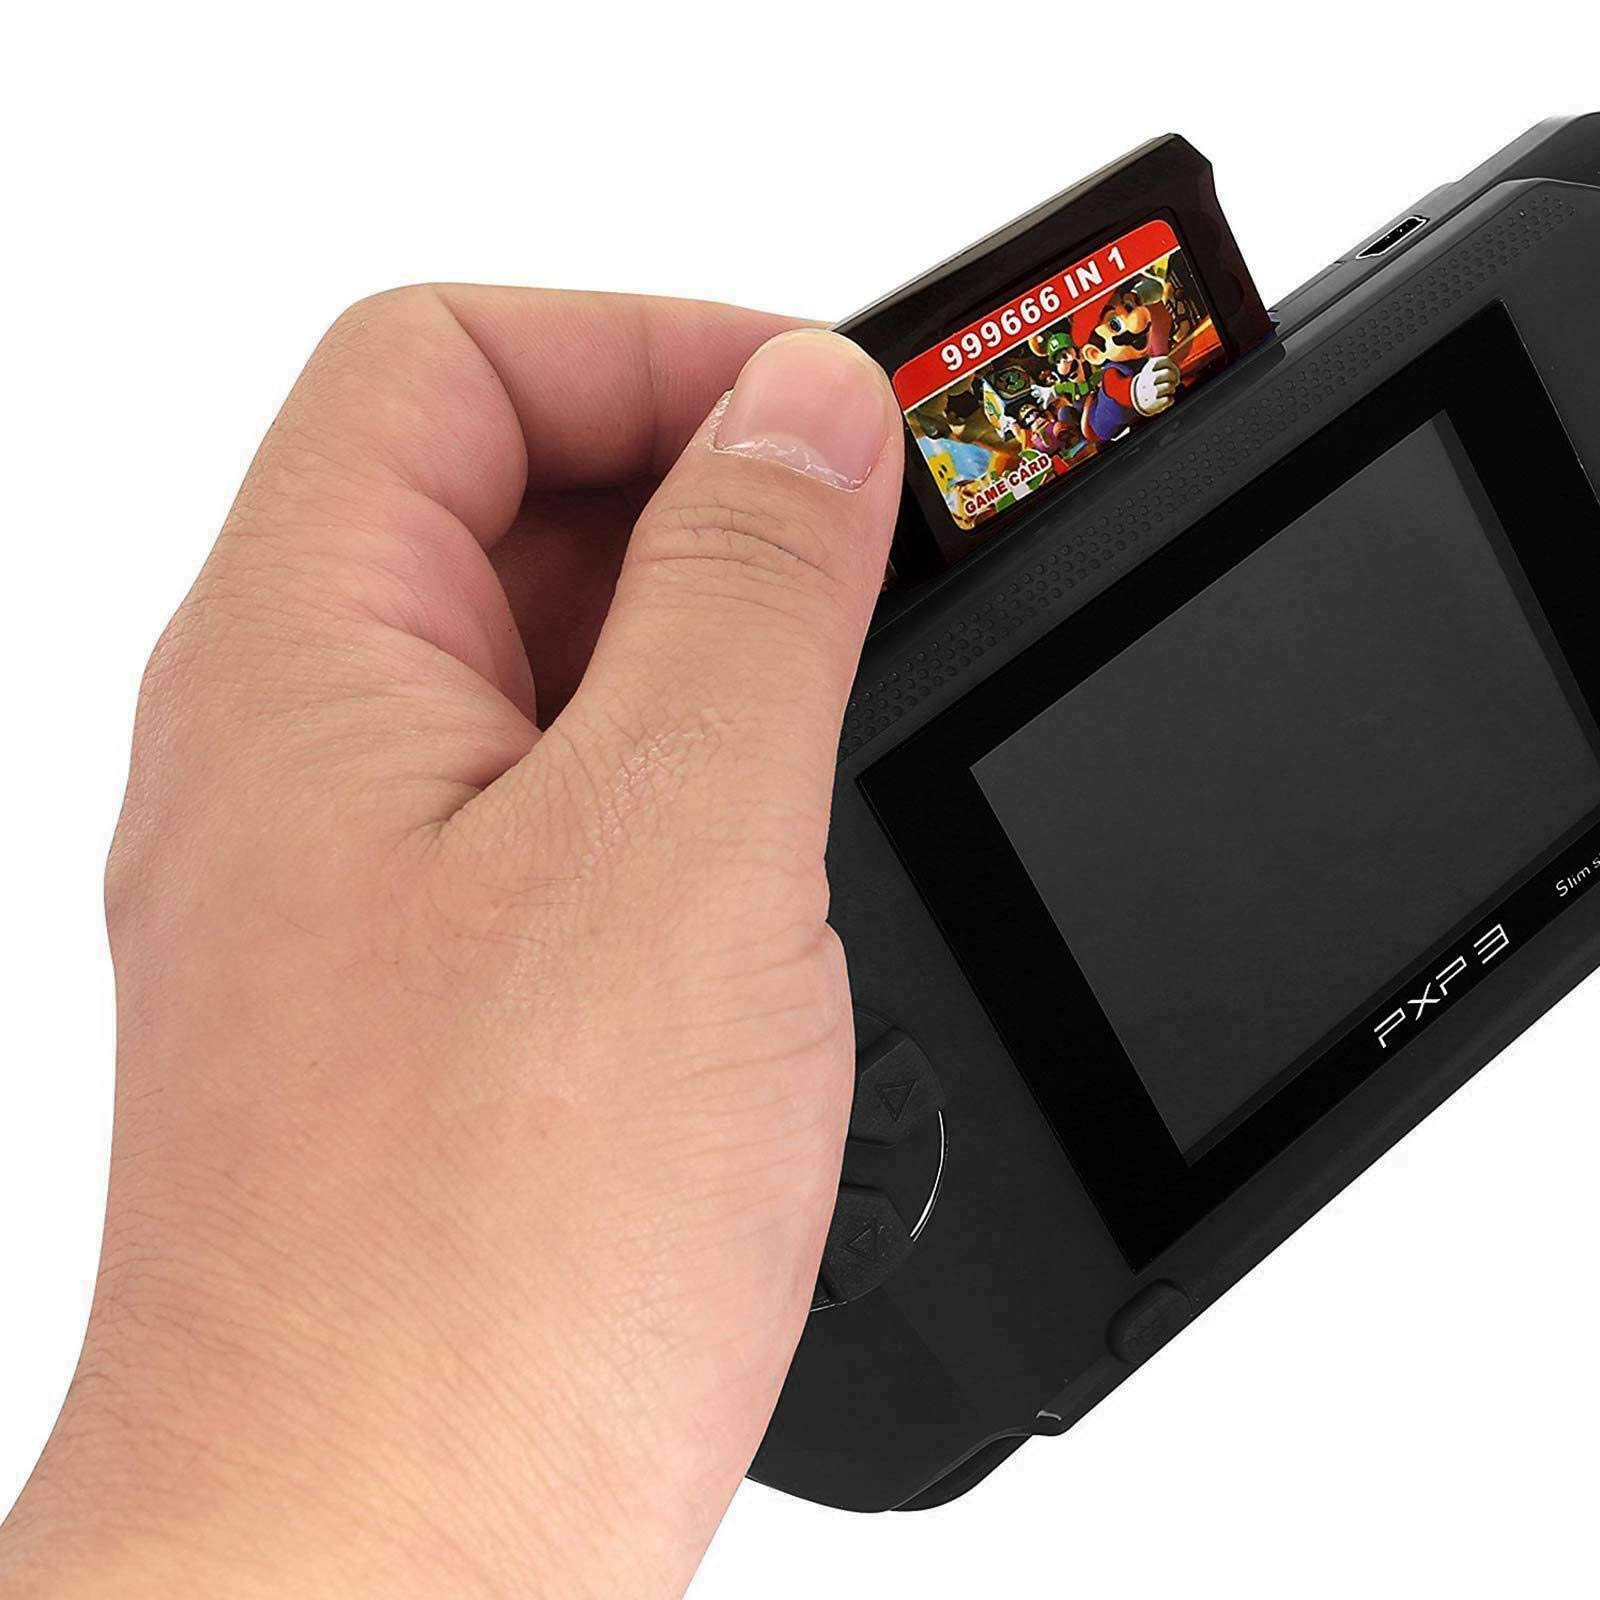 Ocamo Retro Game Console, AV Output PXP3 Portable Handheld Console Built-in Video Game Gaming Console Player Black by Ocamo (Image #3)